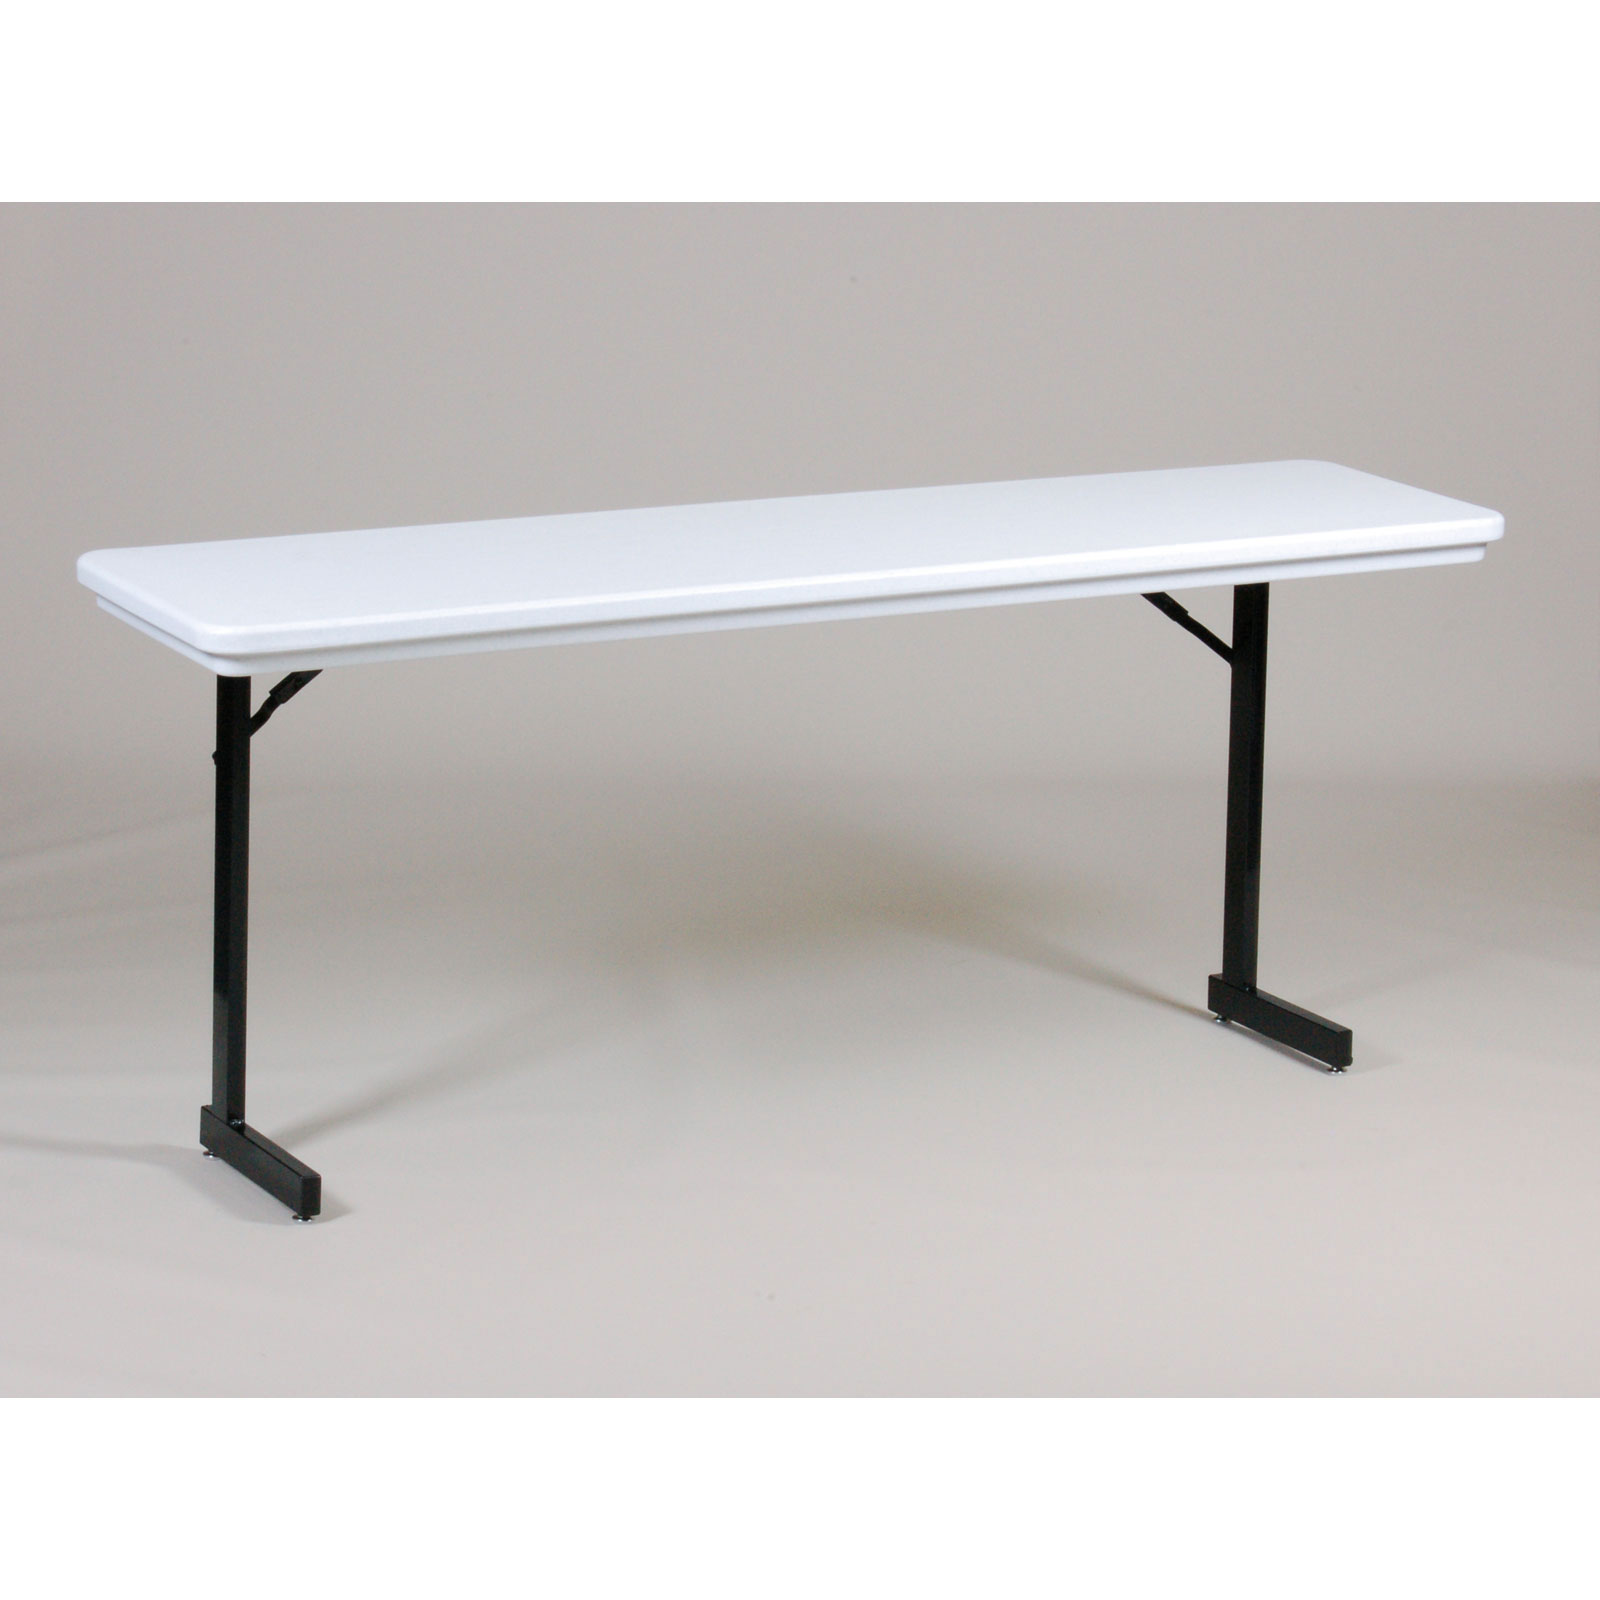 18x72 Adjustable T Leg Folding Seminar Table By Correll In